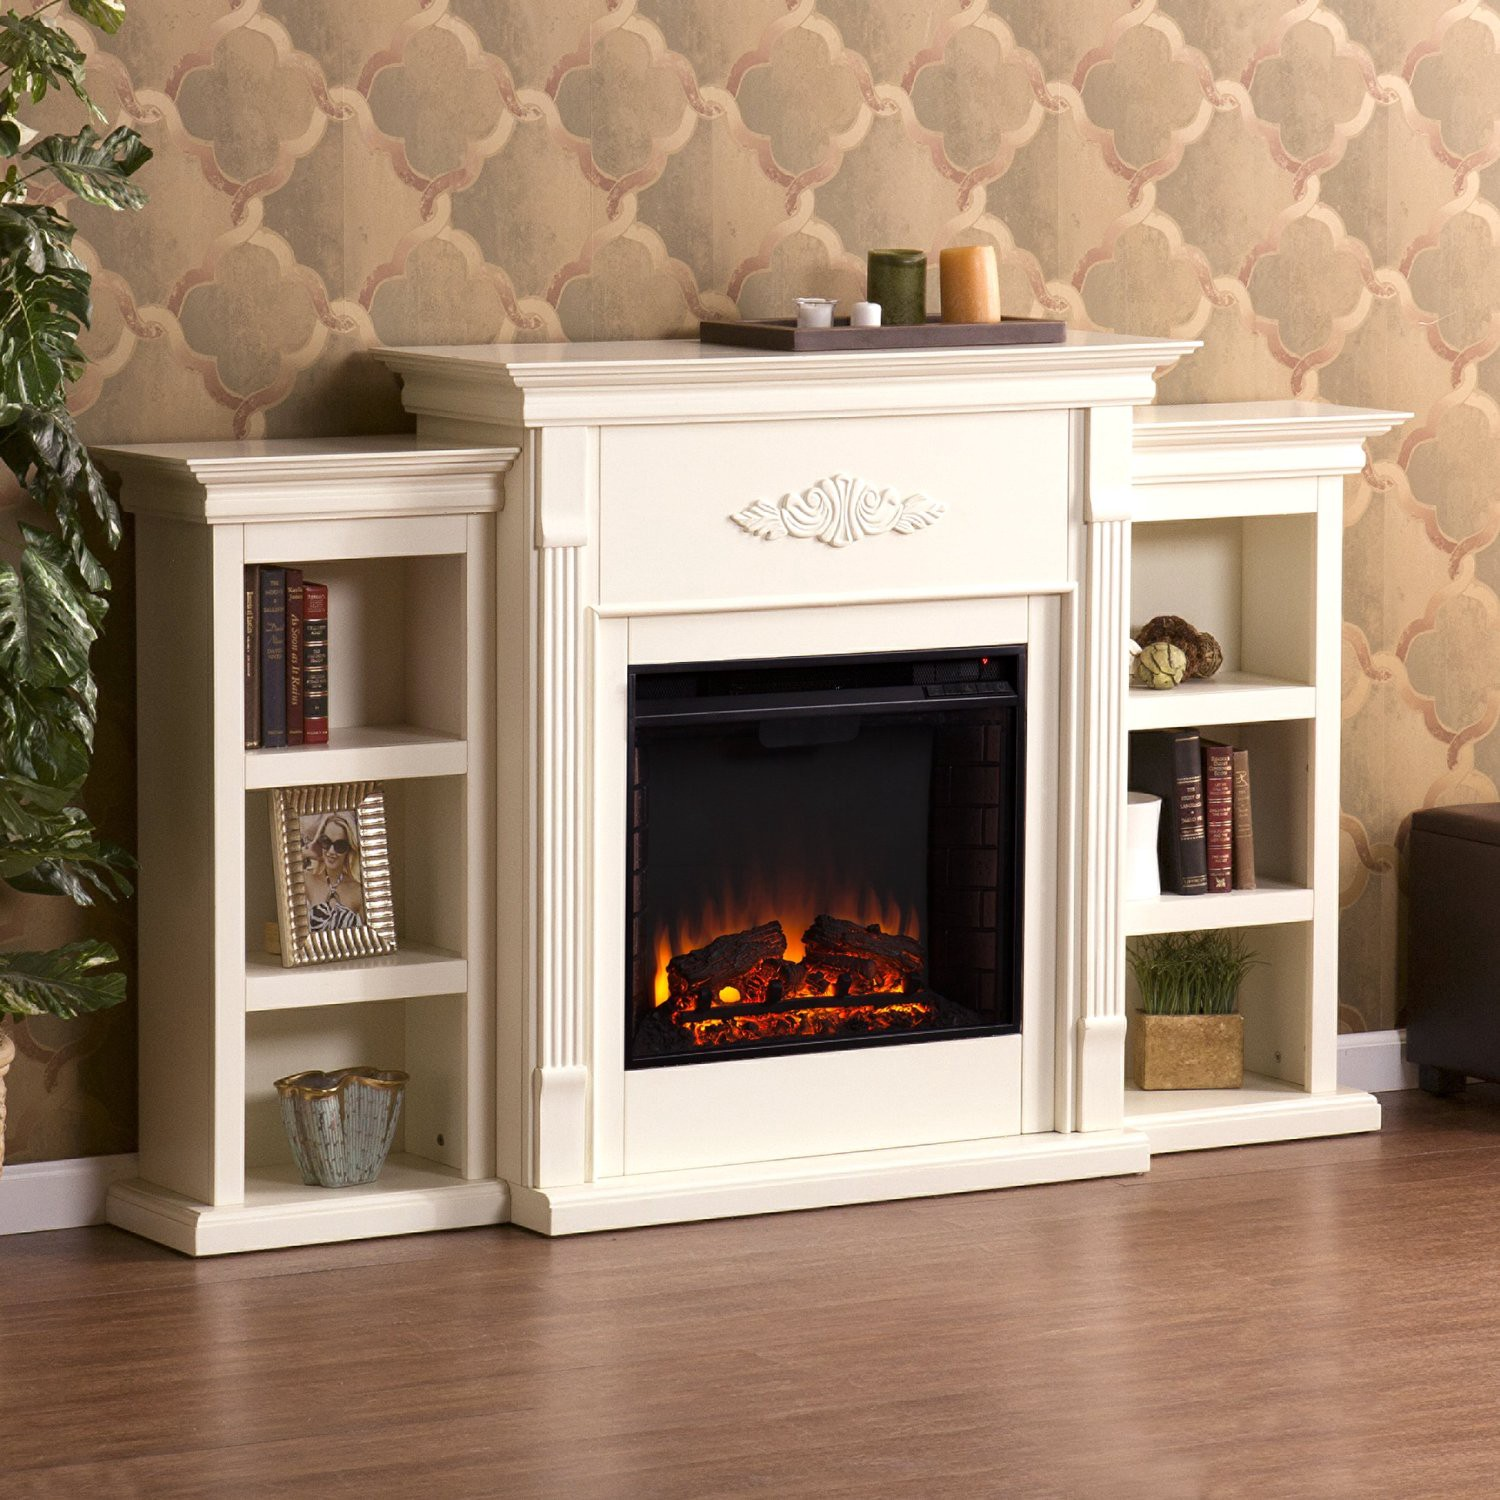 eco friendly electric fireplace does it provide much heat